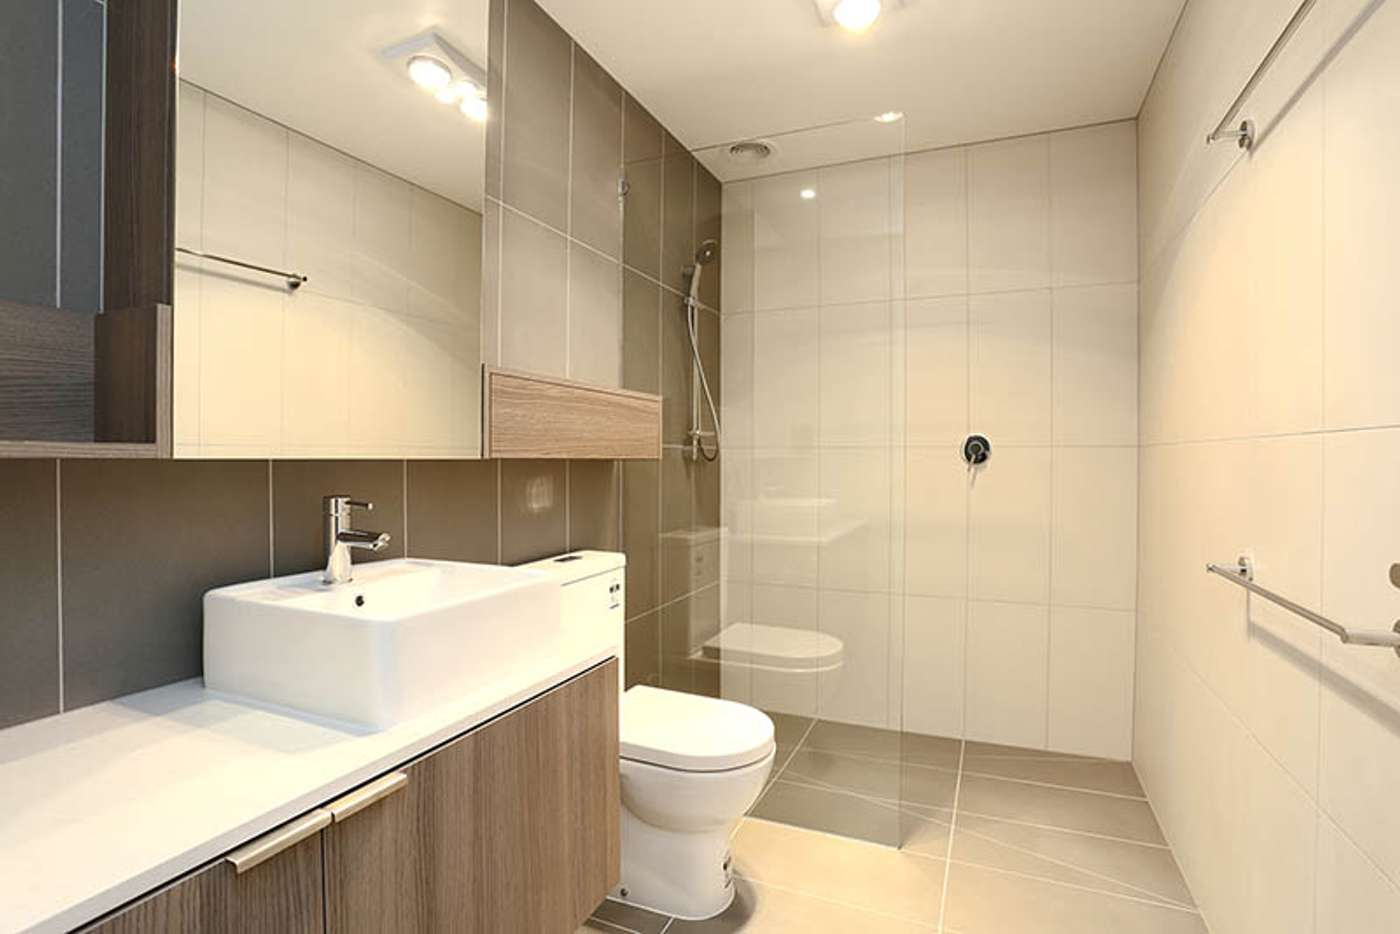 Sixth view of Homely apartment listing, 206/5-13 Stawell St, North Melbourne VIC 3051